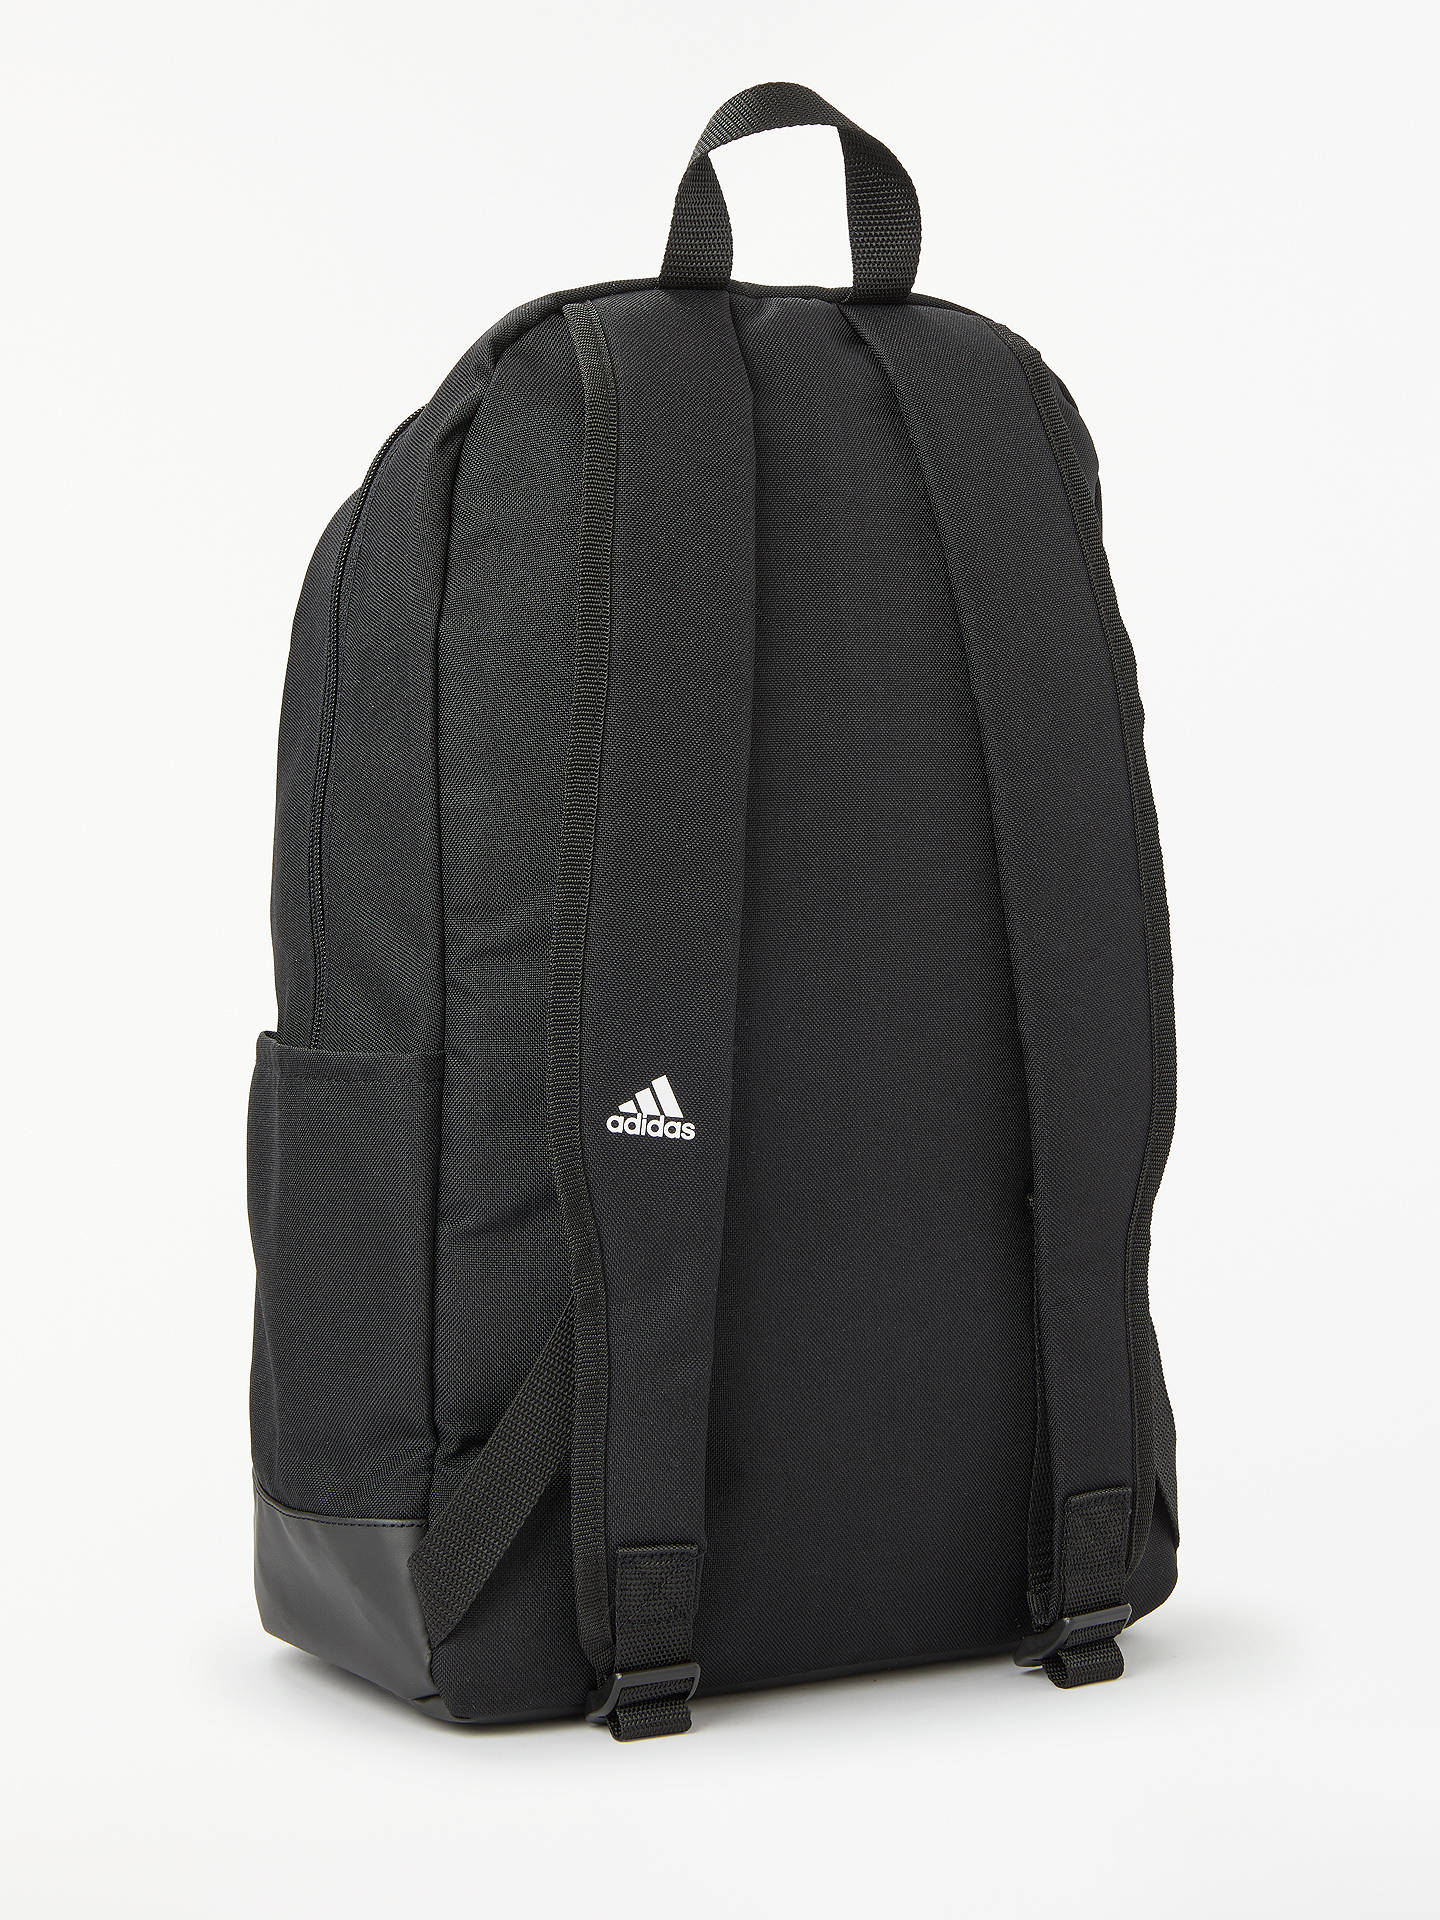 adidas Mens Classic Sports BackPack Accessory Black Sports Training